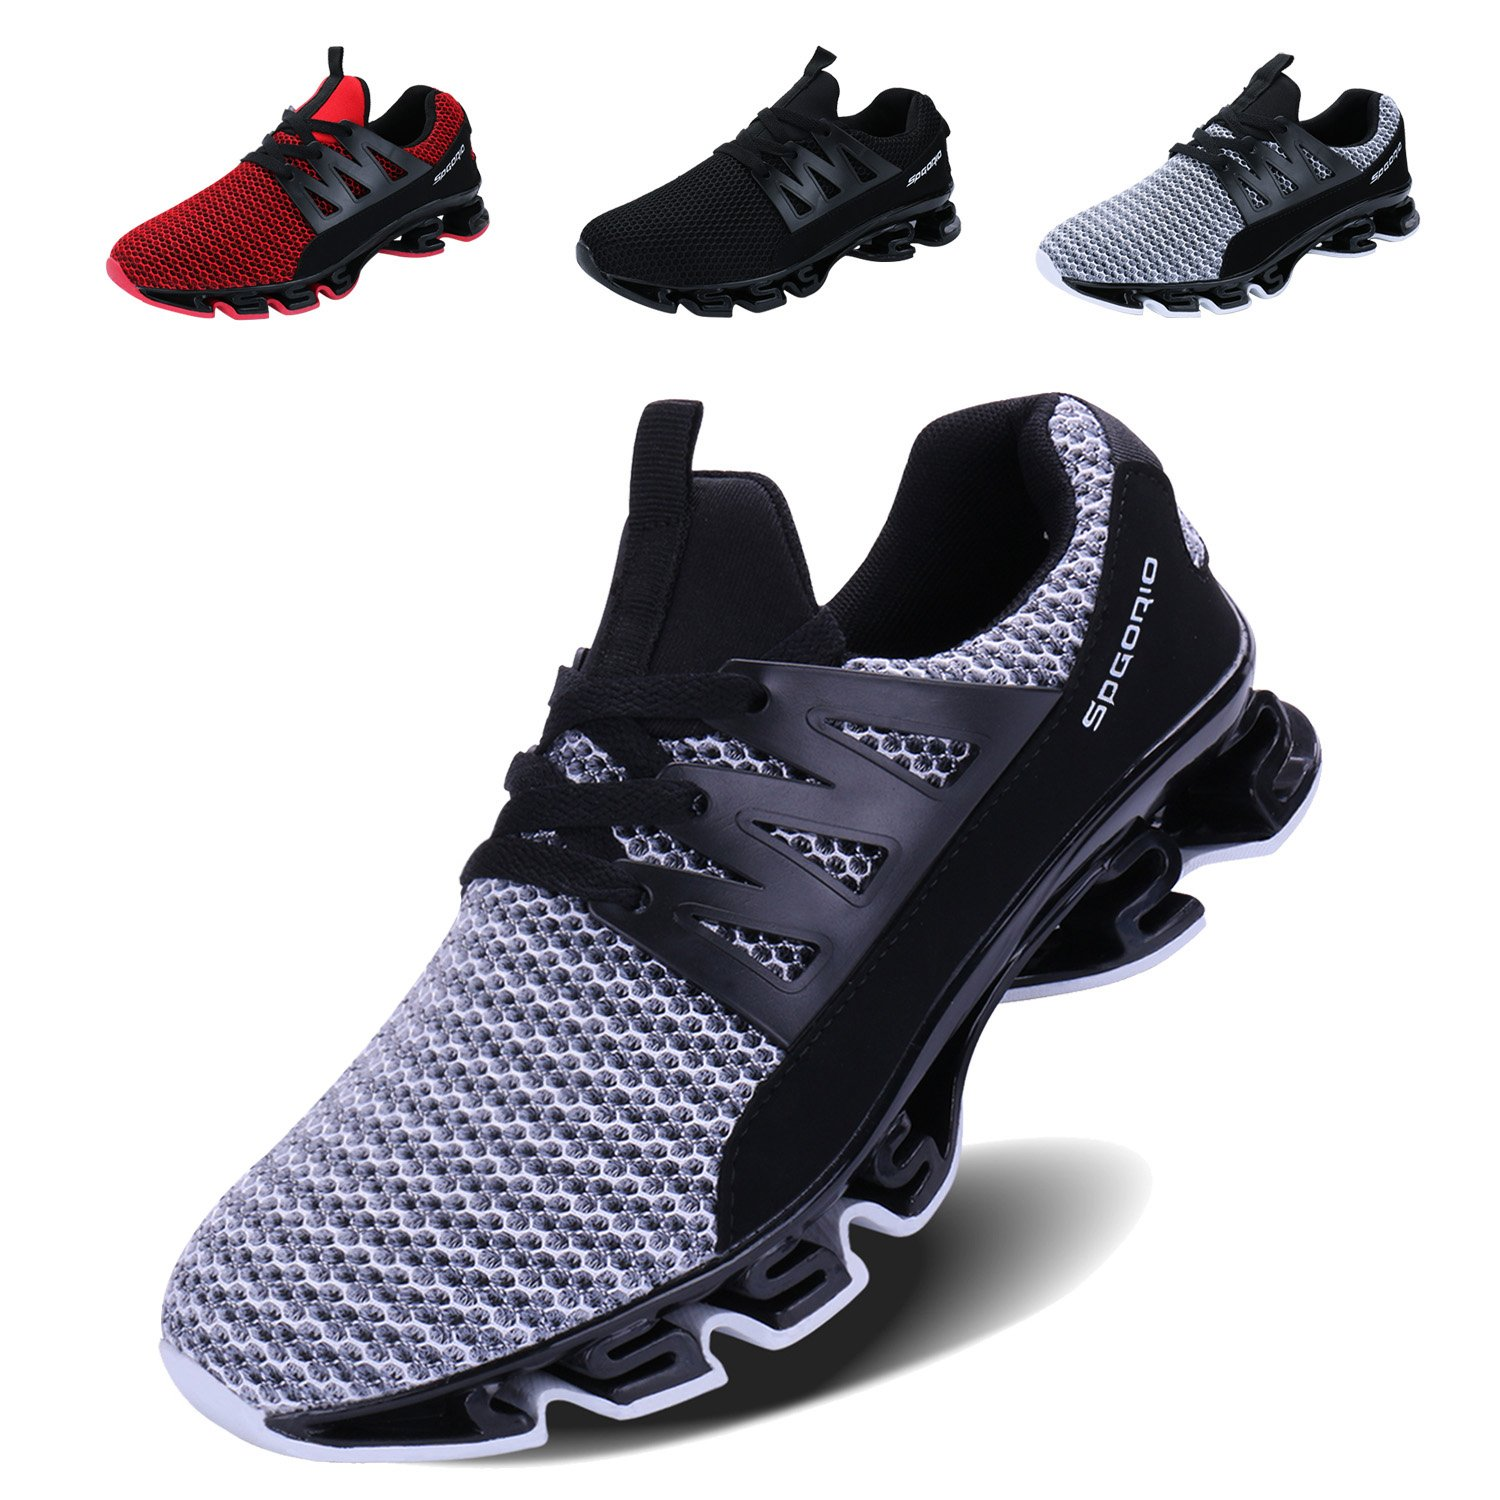 1_grey 10 US VOEN Mens Casual Walking shoes Blade Outdoor Sport Sneakers Mesh Breathable Fashion shoes